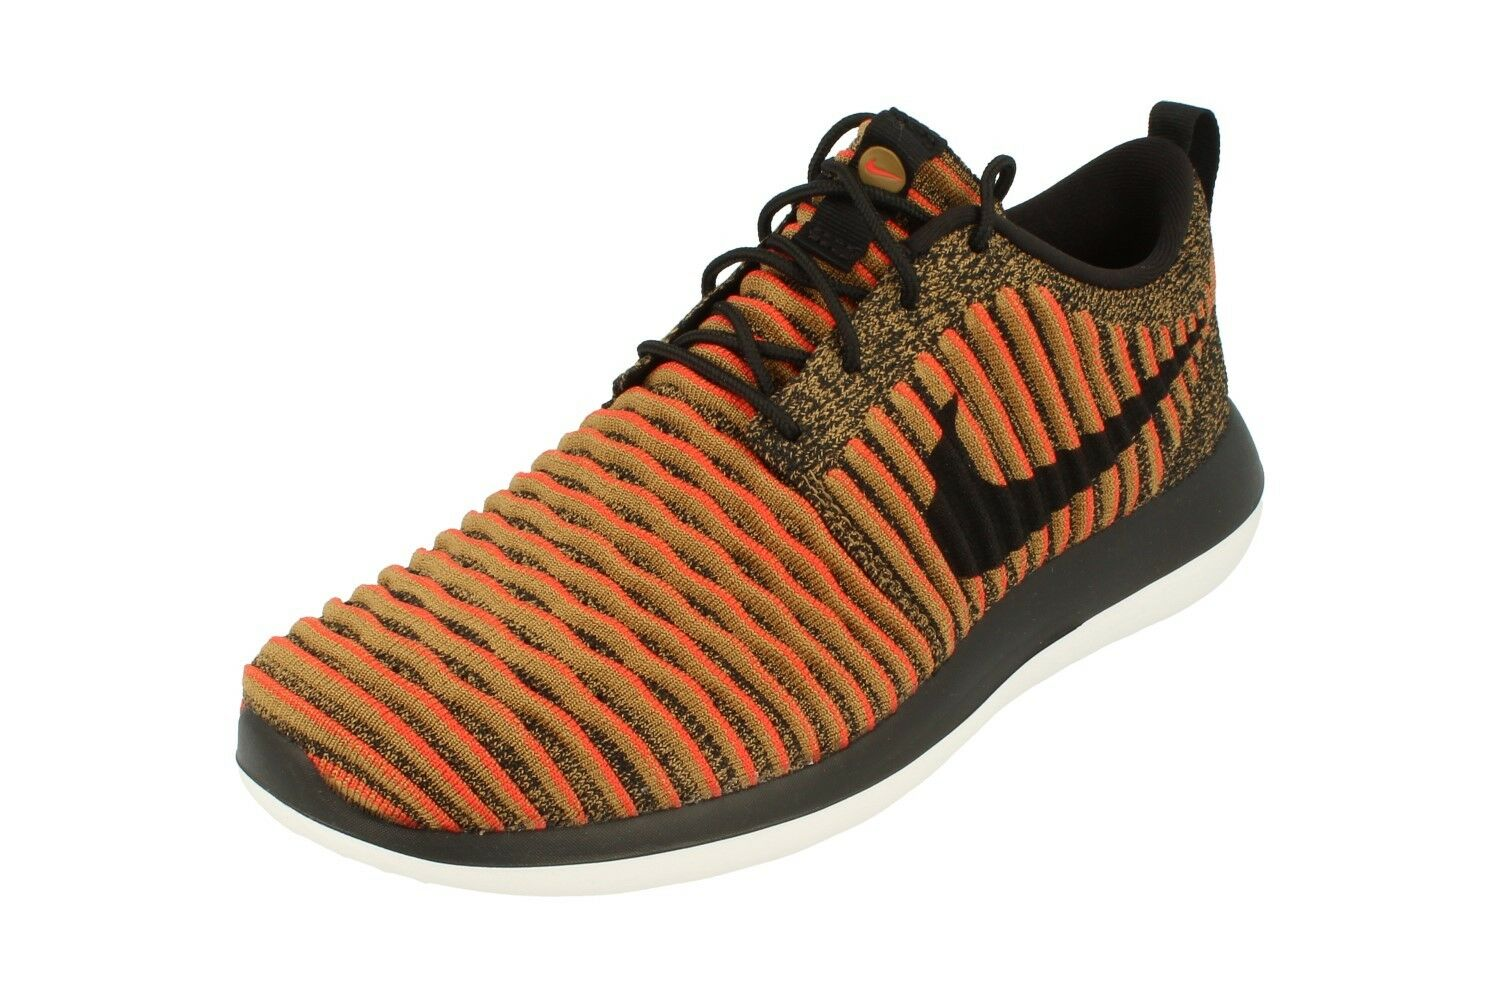 c55a8f9f57a Nike Roshe Two Flyknit Mens Running Trainers Trainers Trainers 844833  Sneakers Shoes 009 90b7a5